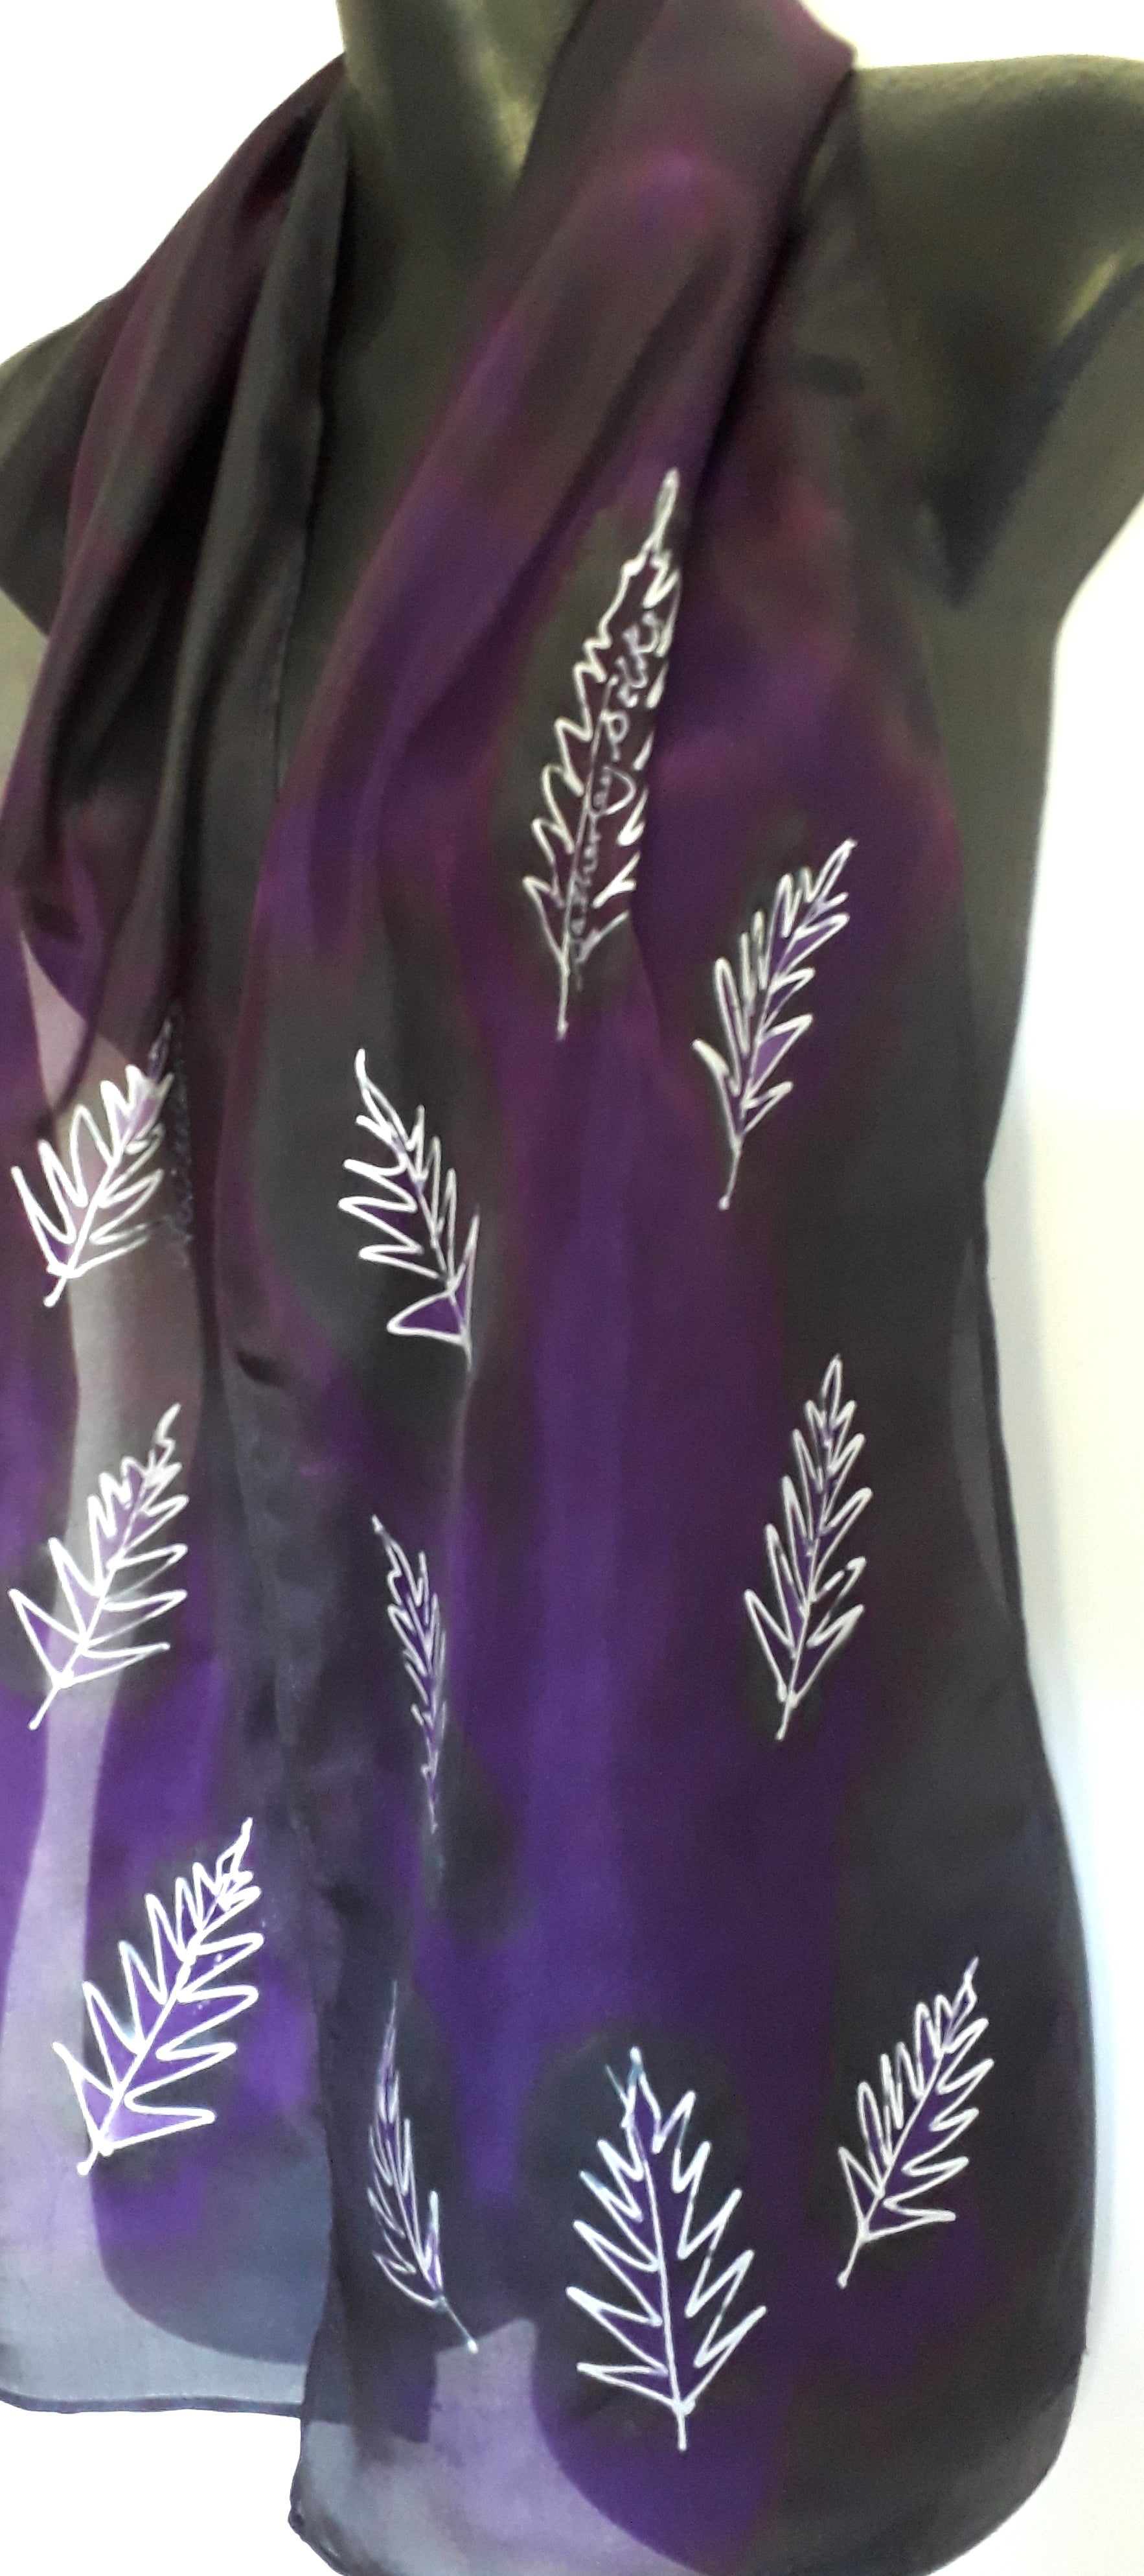 NZ Silver Ferns on Black & Purple - Hand Painted Silk Scarf - Satherley Silks NZ